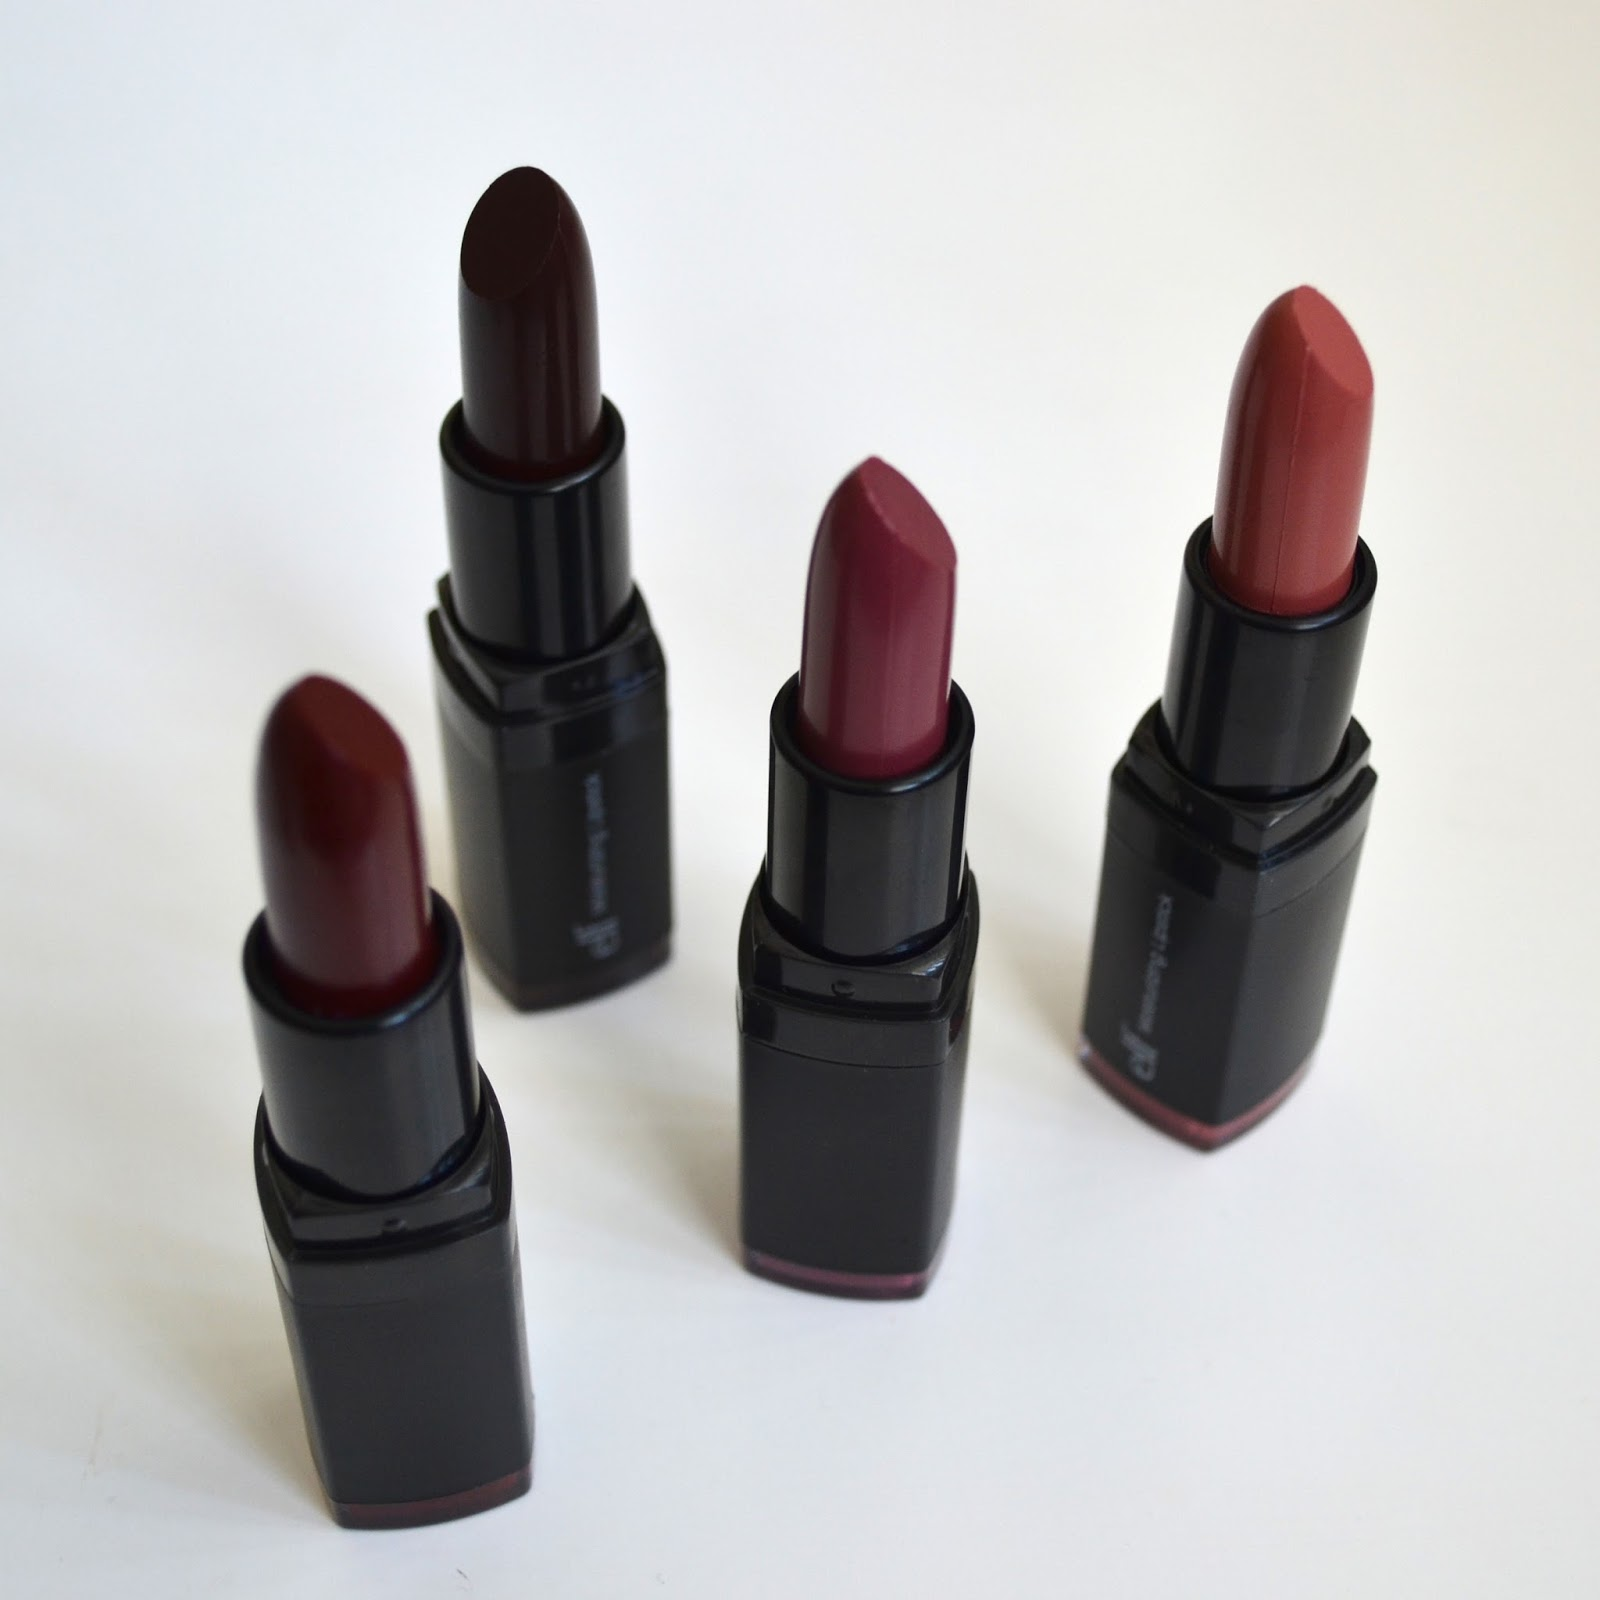 e.l.f. Cosmetics Moisturizing Lipsticks (4 New Shades) - Photos ...